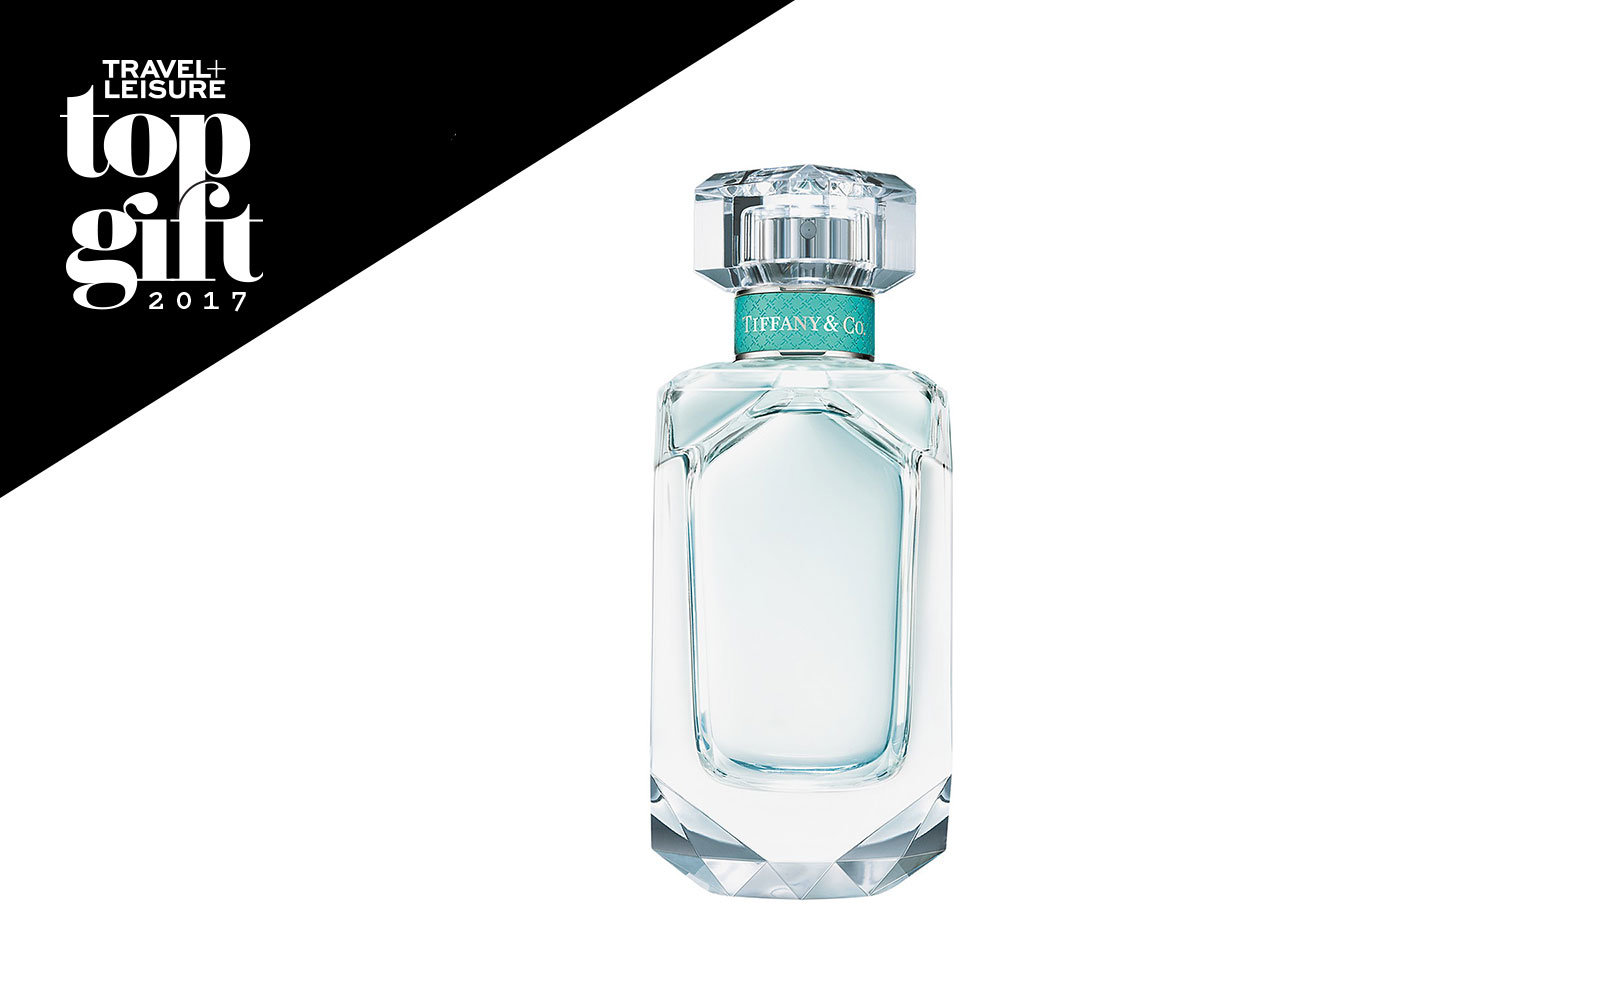 Tiffany & Co signature perfume